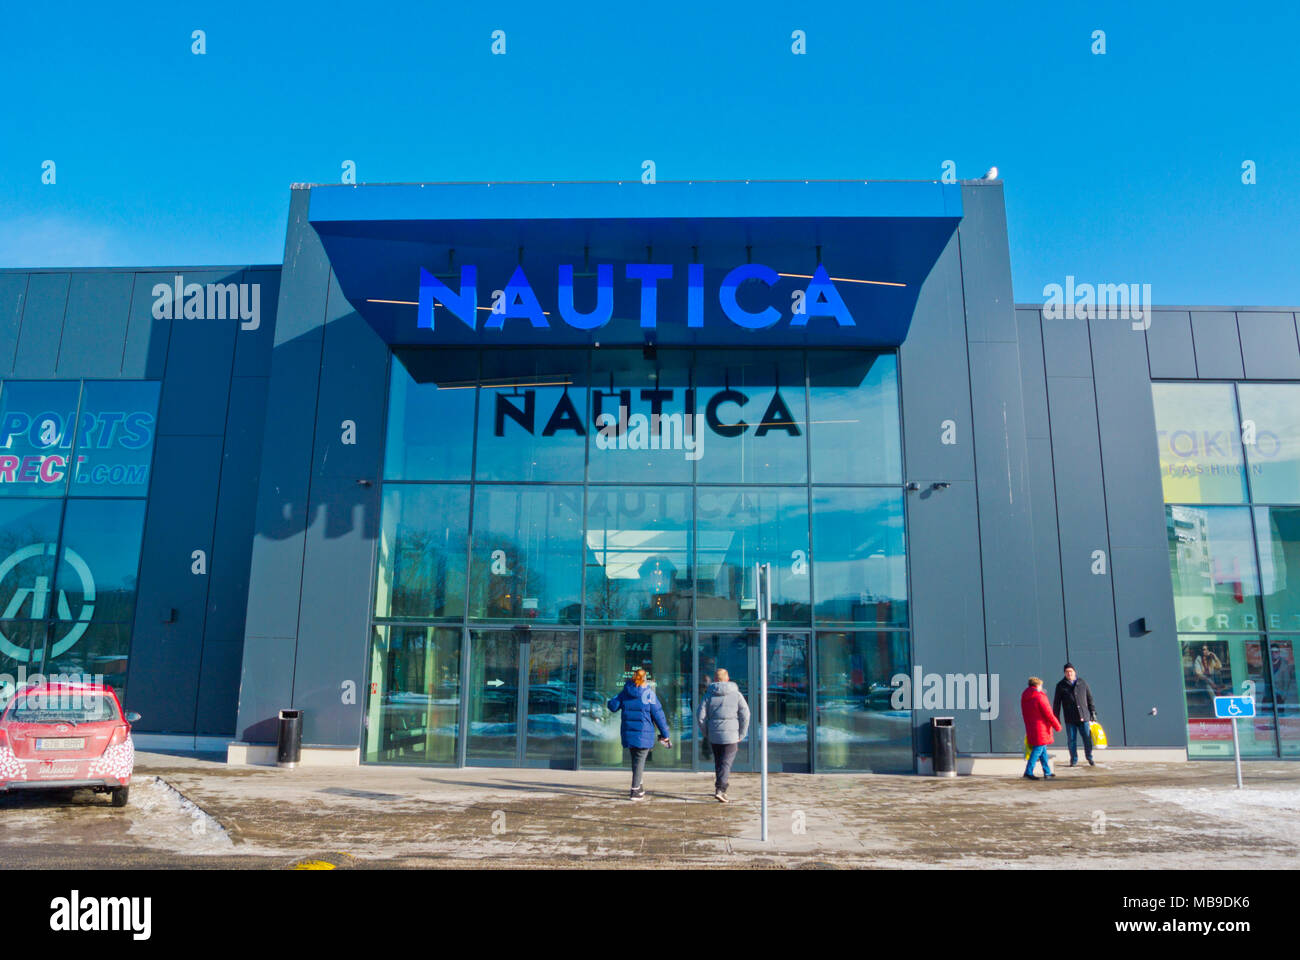 64089ff5133 Nautica, shopping centre, Port, Tallinn, Estonia Stock Photo ...